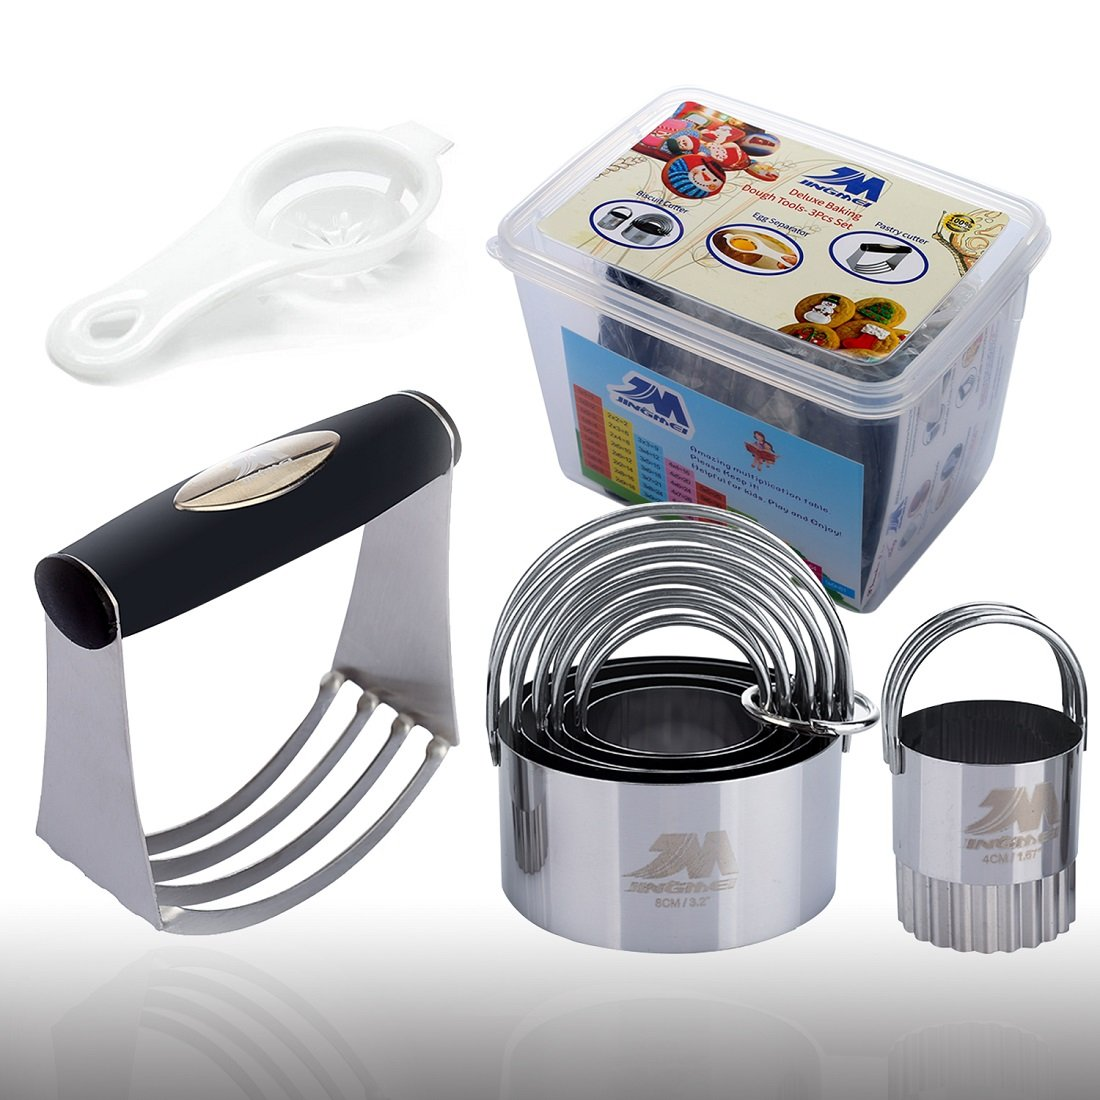 Pastry Cutter Set Biscuit Cutter Set (5 Circle+1Fluted Edge) Dough Blender Mixer Cookie Cutters Round Baking Dough Tools & Pastry Utensils with Egg Separator GIFT BOX! by M JINGMEI